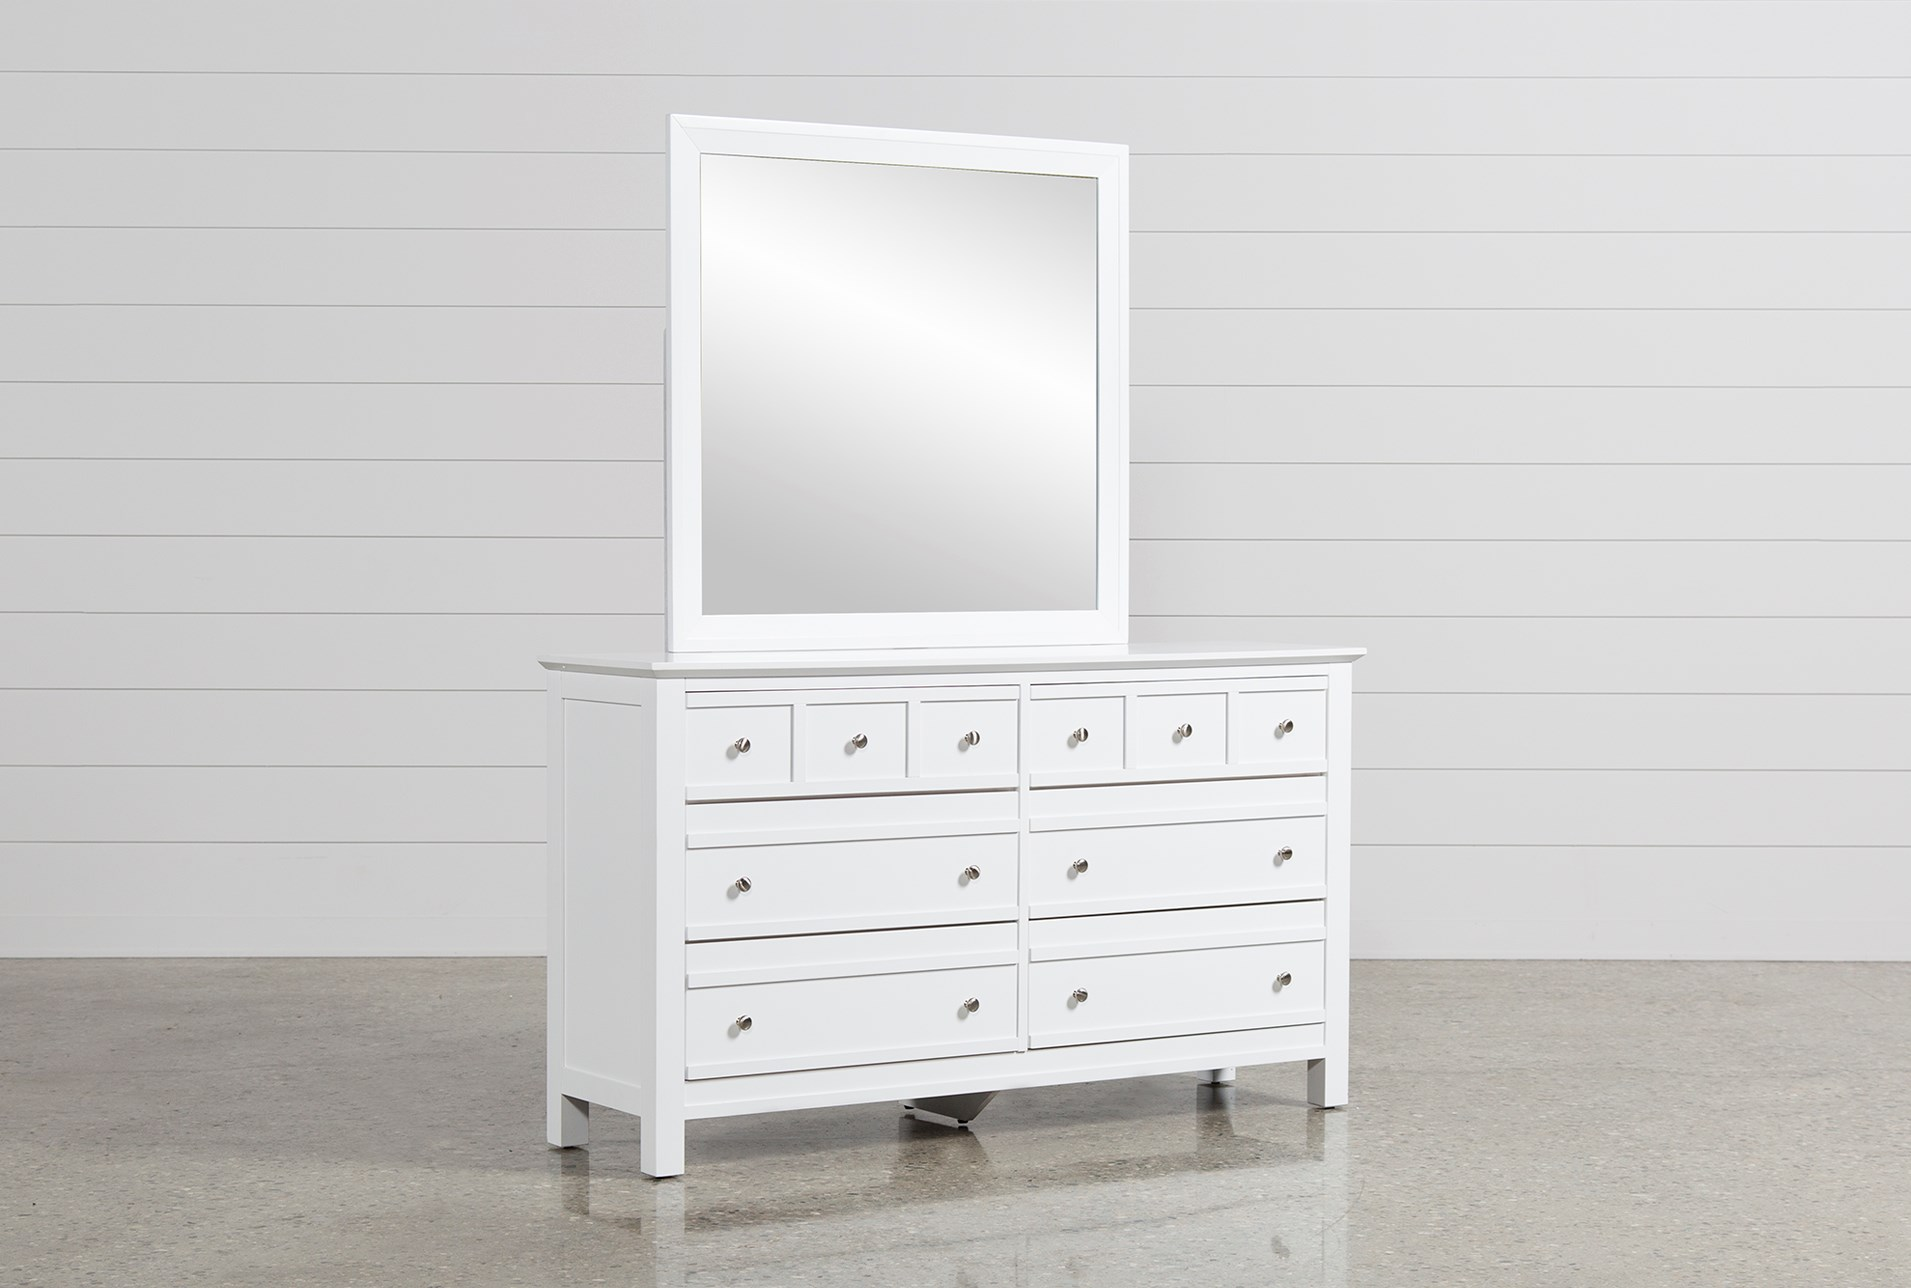 Bayside White Dresser Mirror Qty 1 Has Been Successfully Added To Your Cart